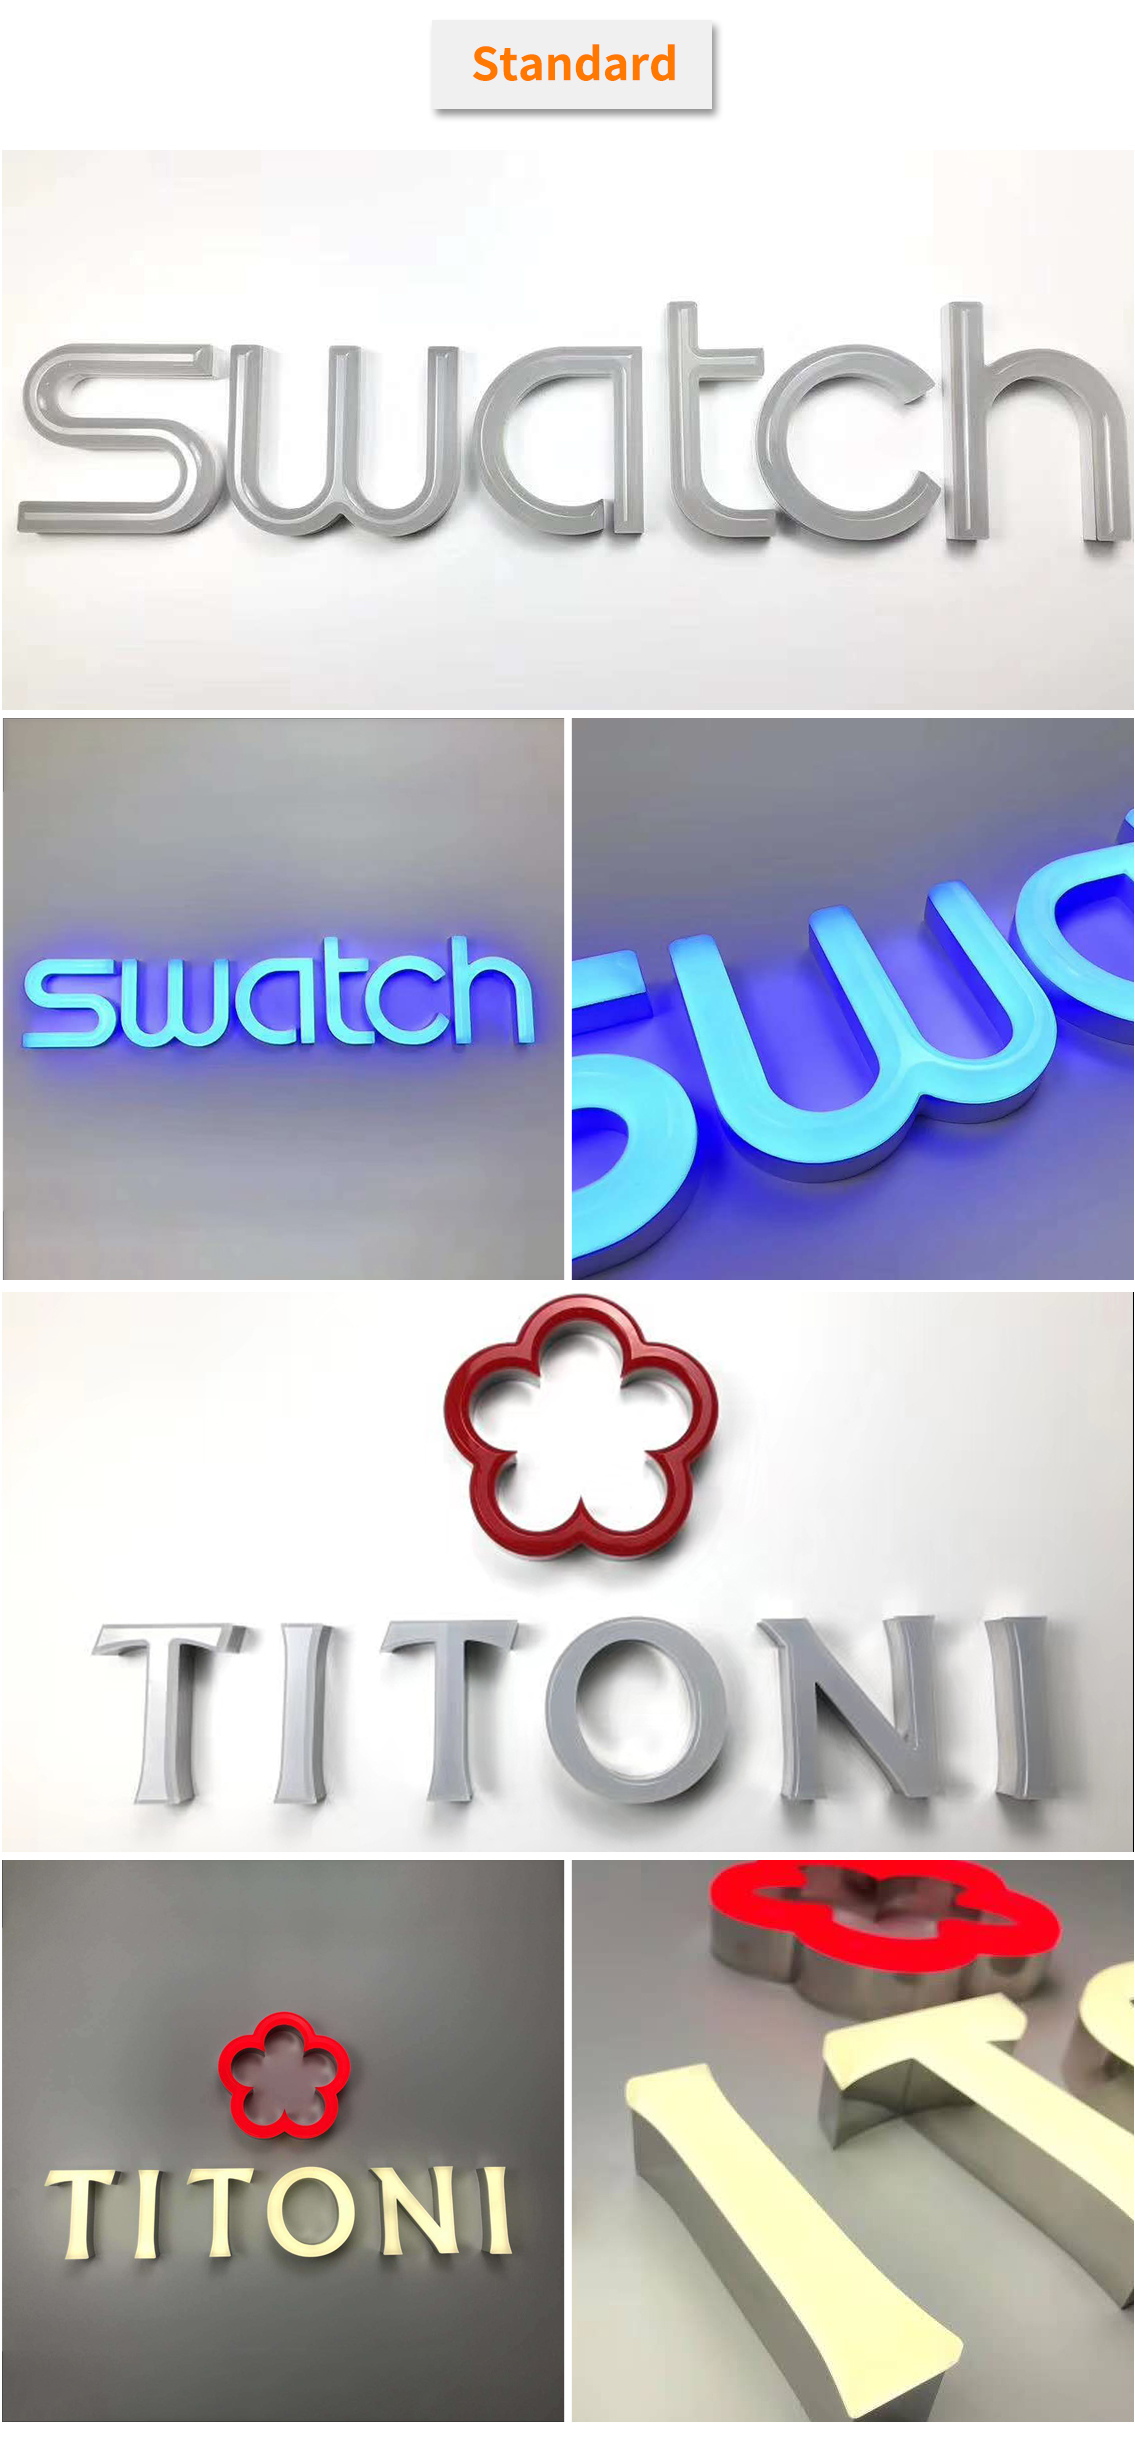 Outdoor 3d led illuminated acrylic alphabet letter sign